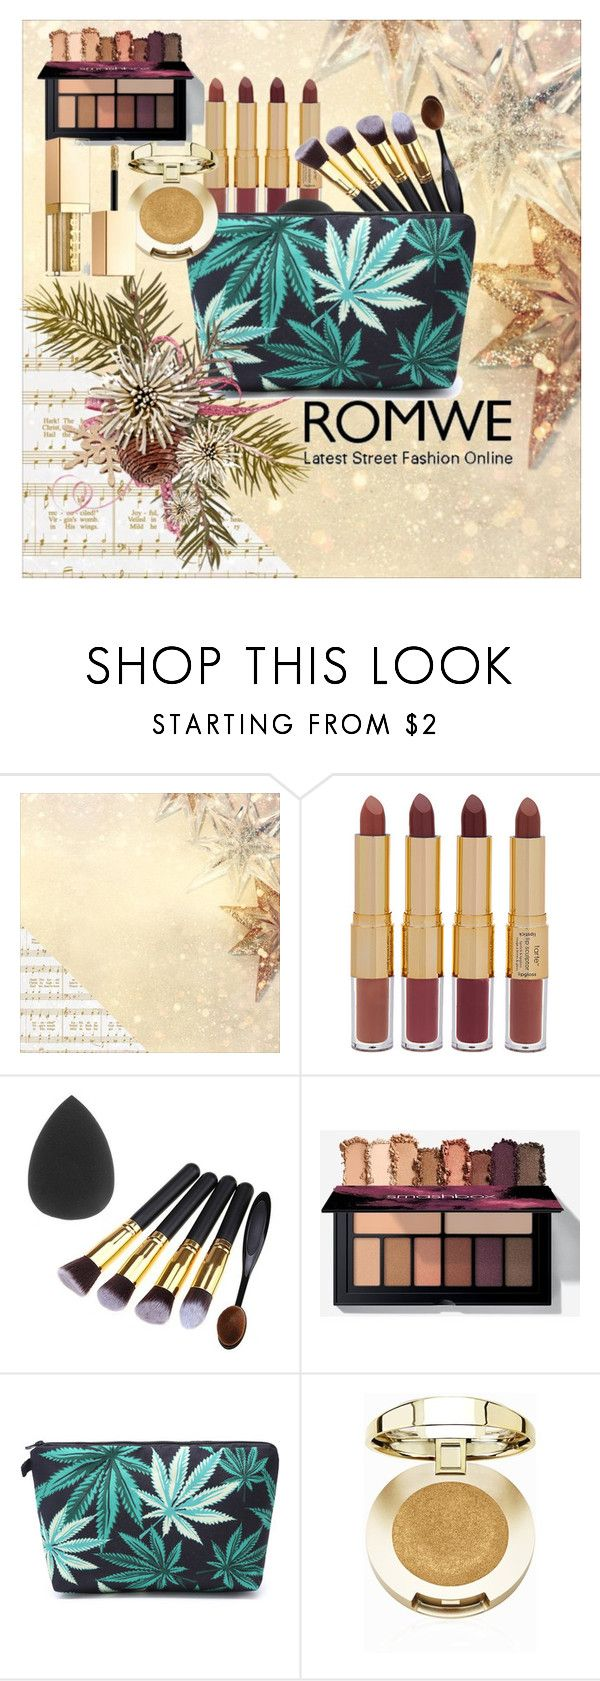 """Untitled #167"" by elma-poz ❤ liked on Polyvore featuring Kaisercraft, tarte, Milani and Stila"